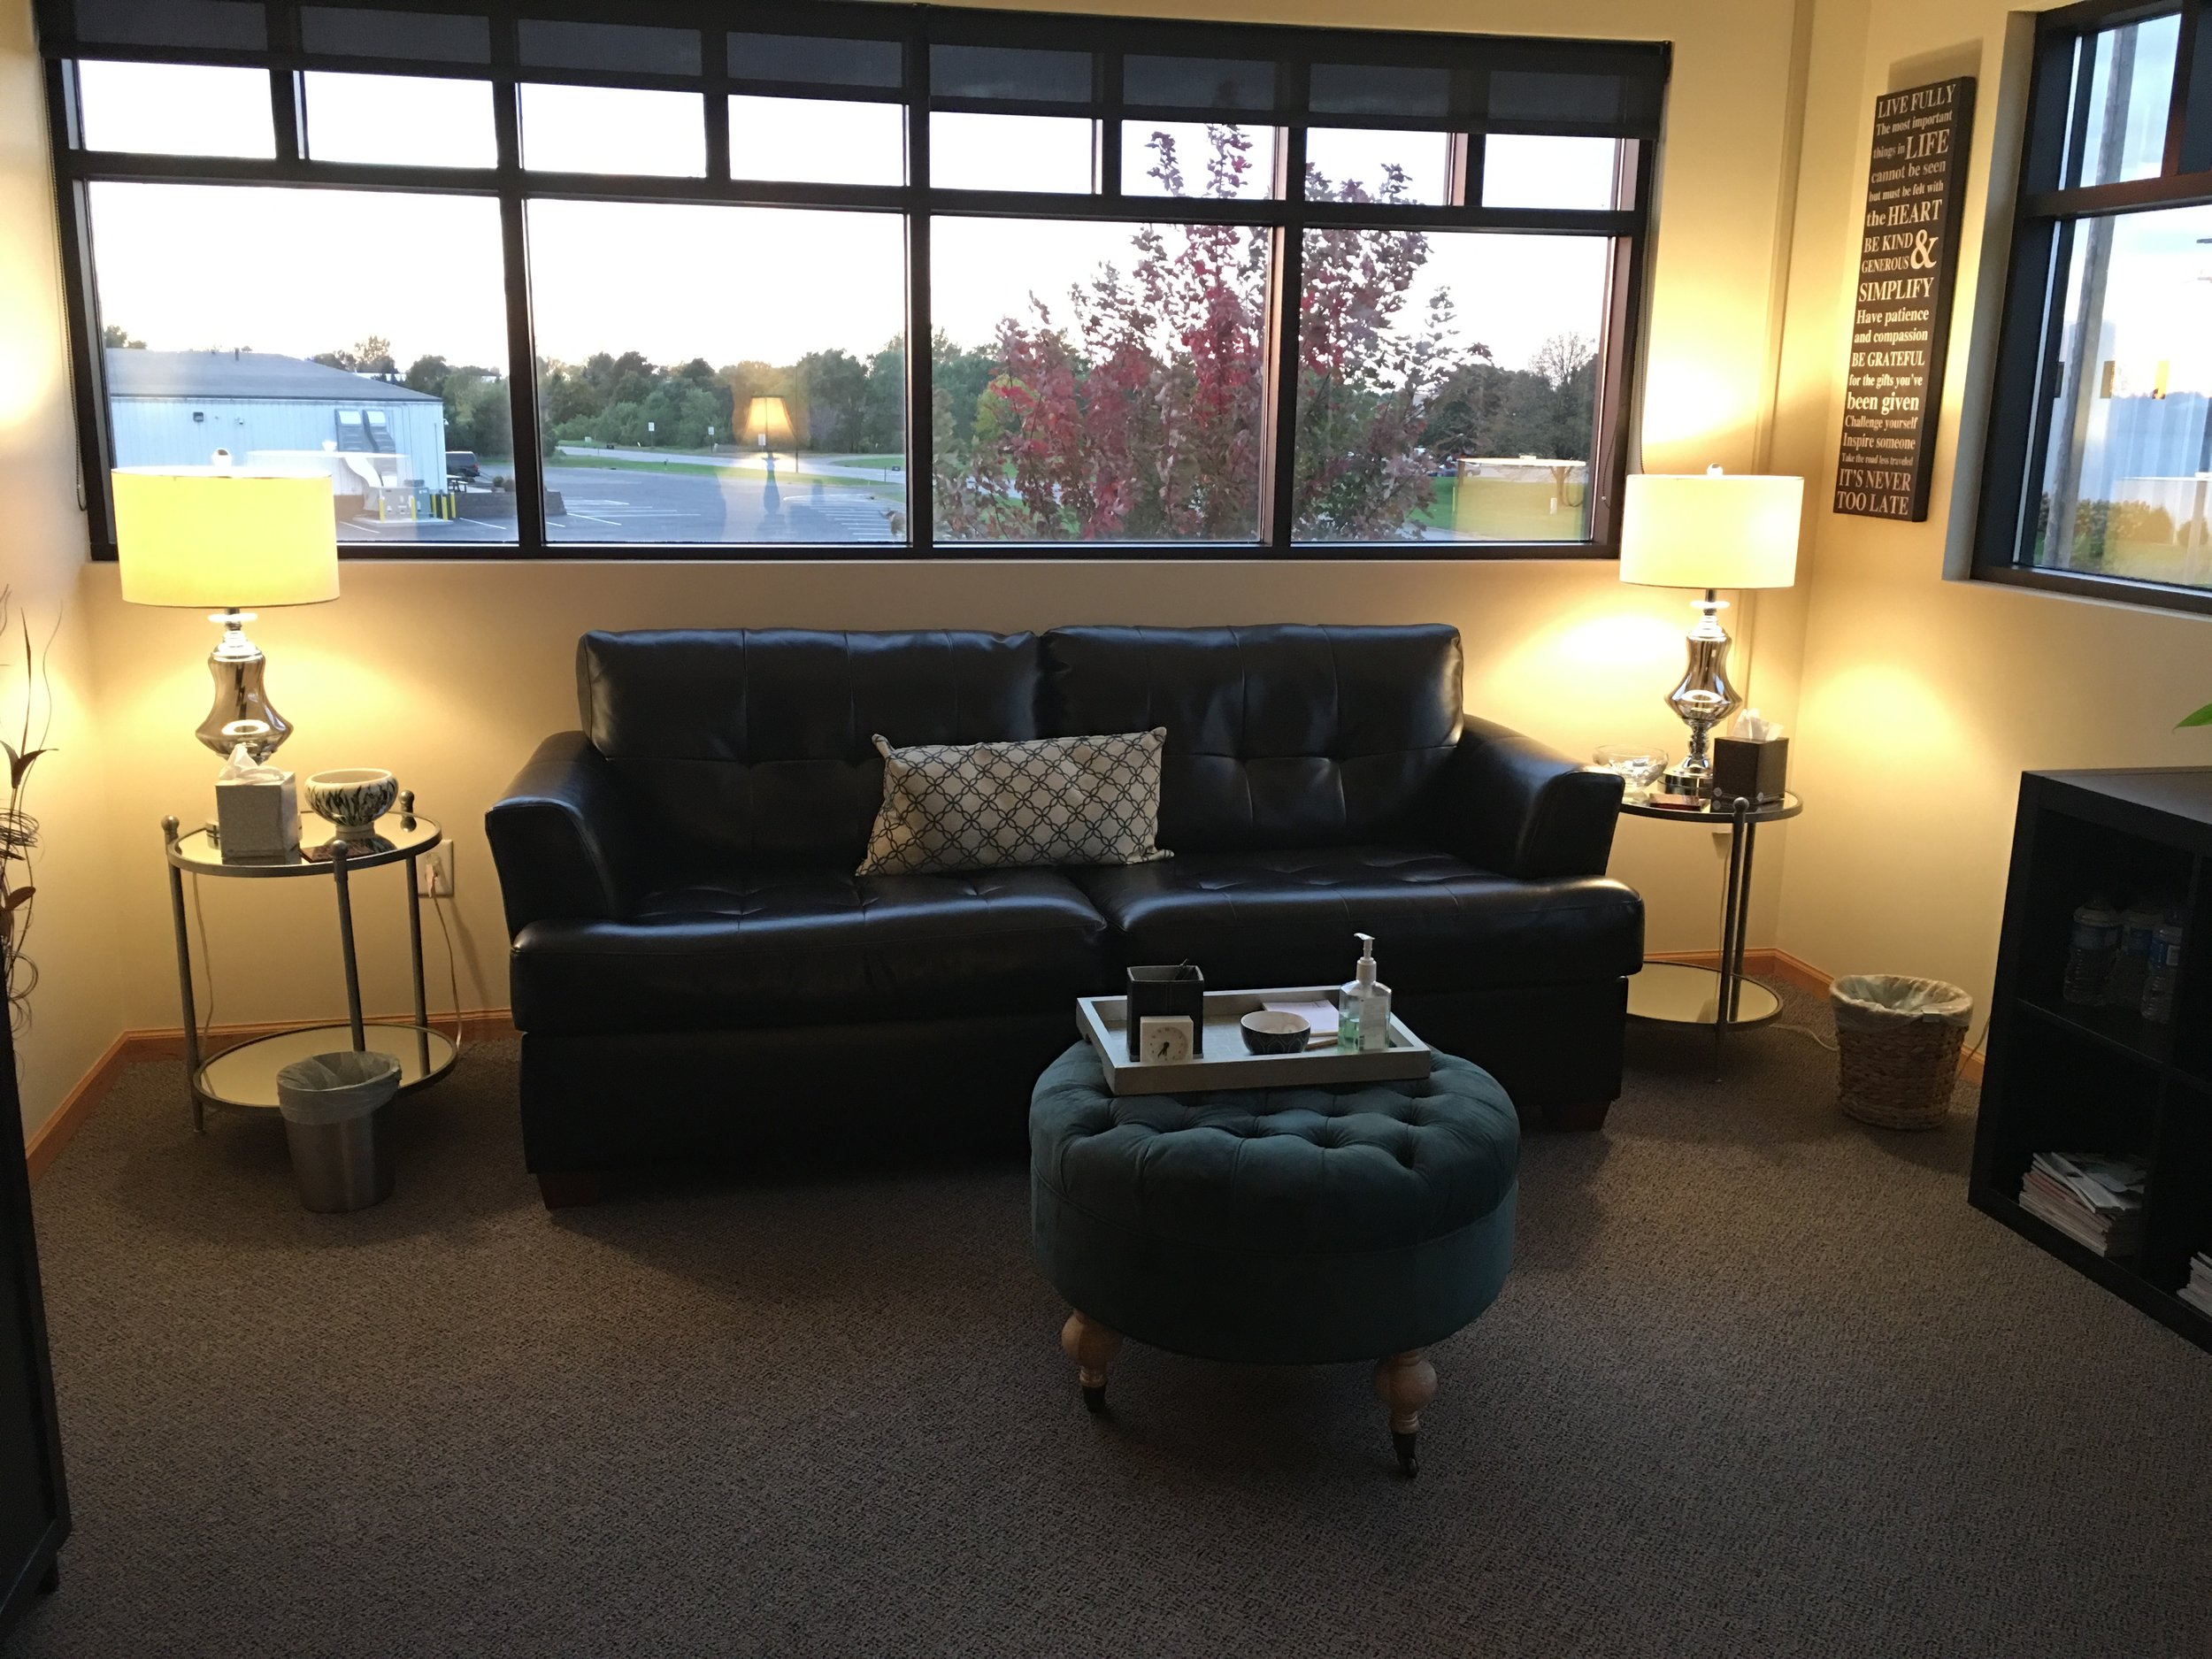 Monticello MN therapy office